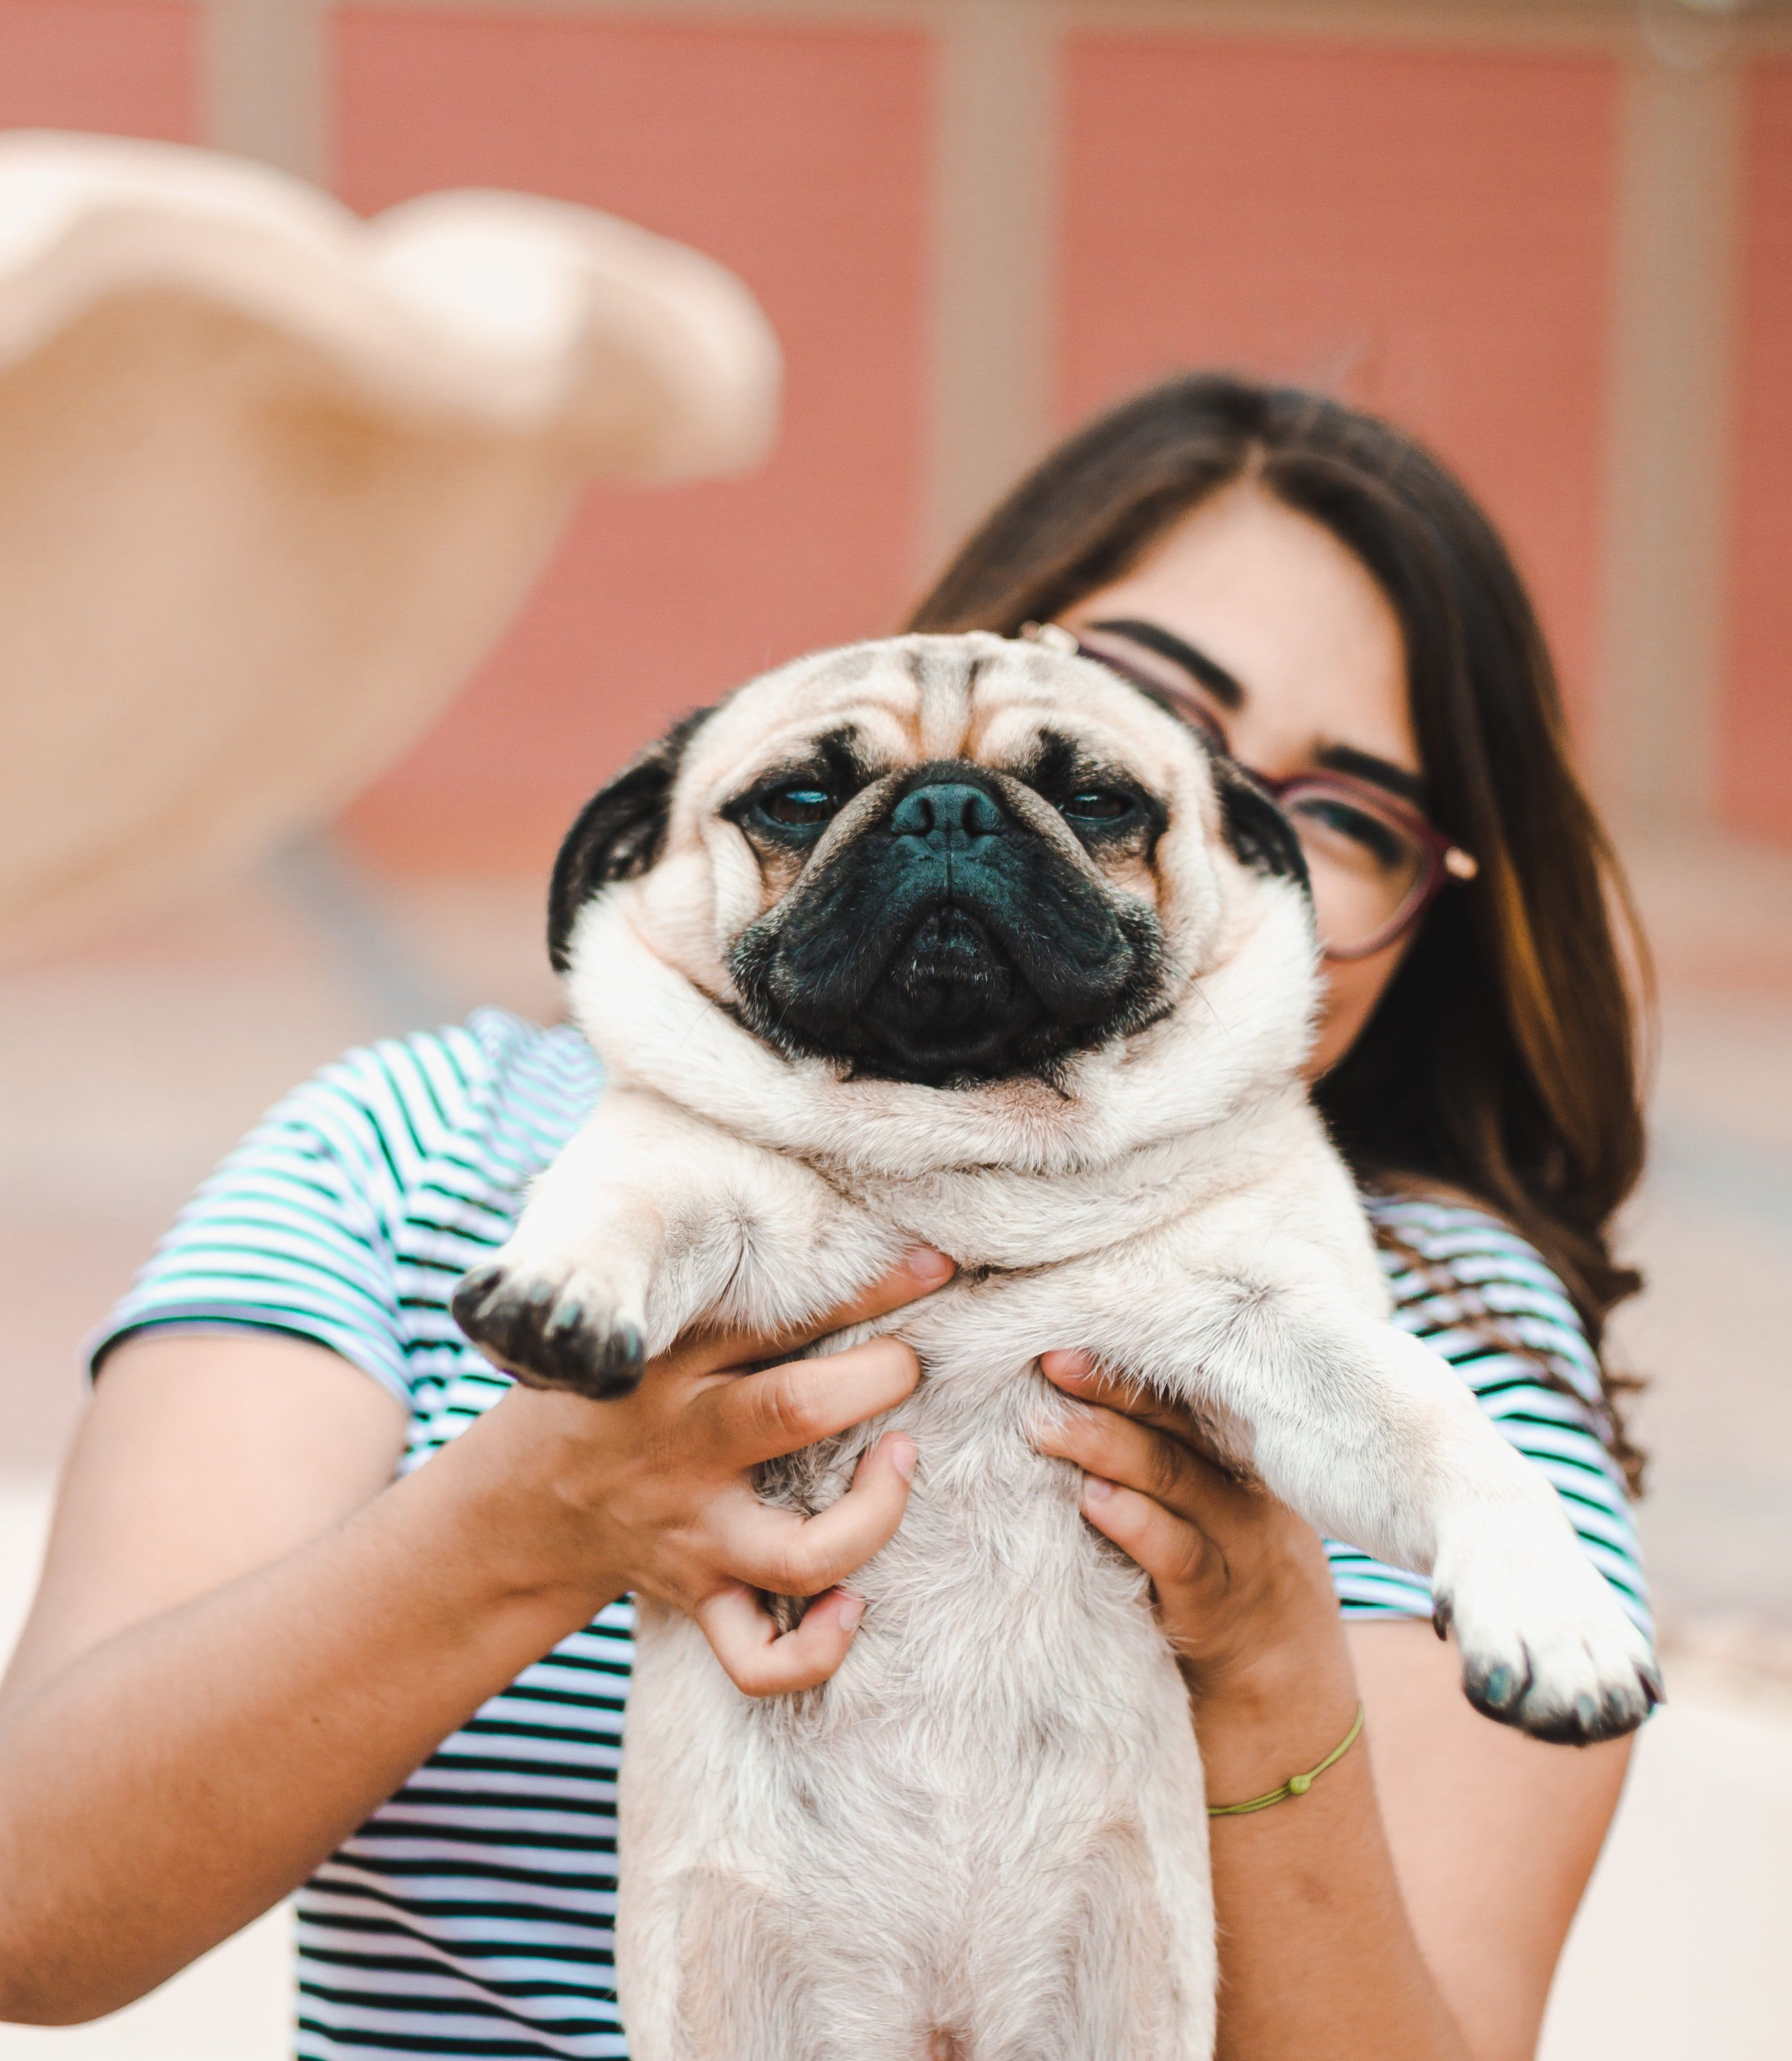 Woman Holding Pug Puppy Cute Senior Pictures Dog Photograph